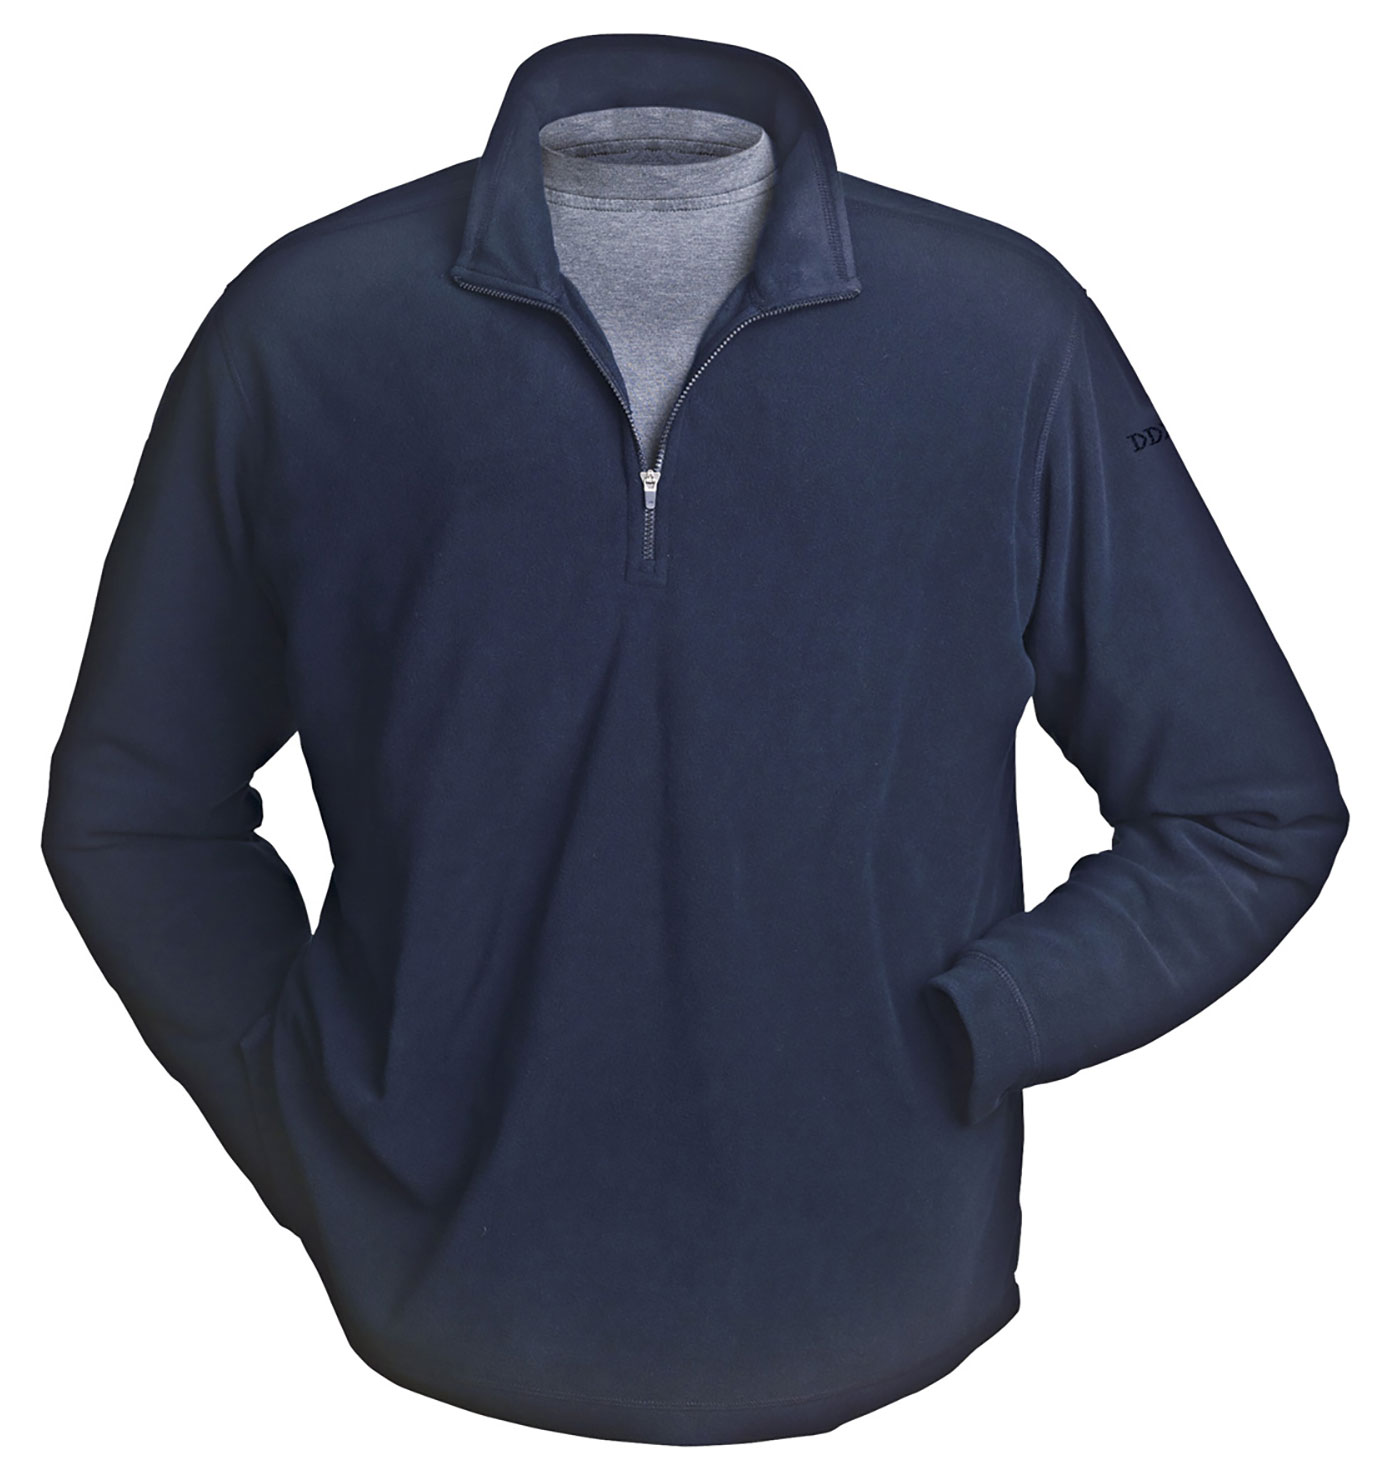 Dri Duck Element Quarter-Zip Nano Fleece Pullover by Dri-Duck